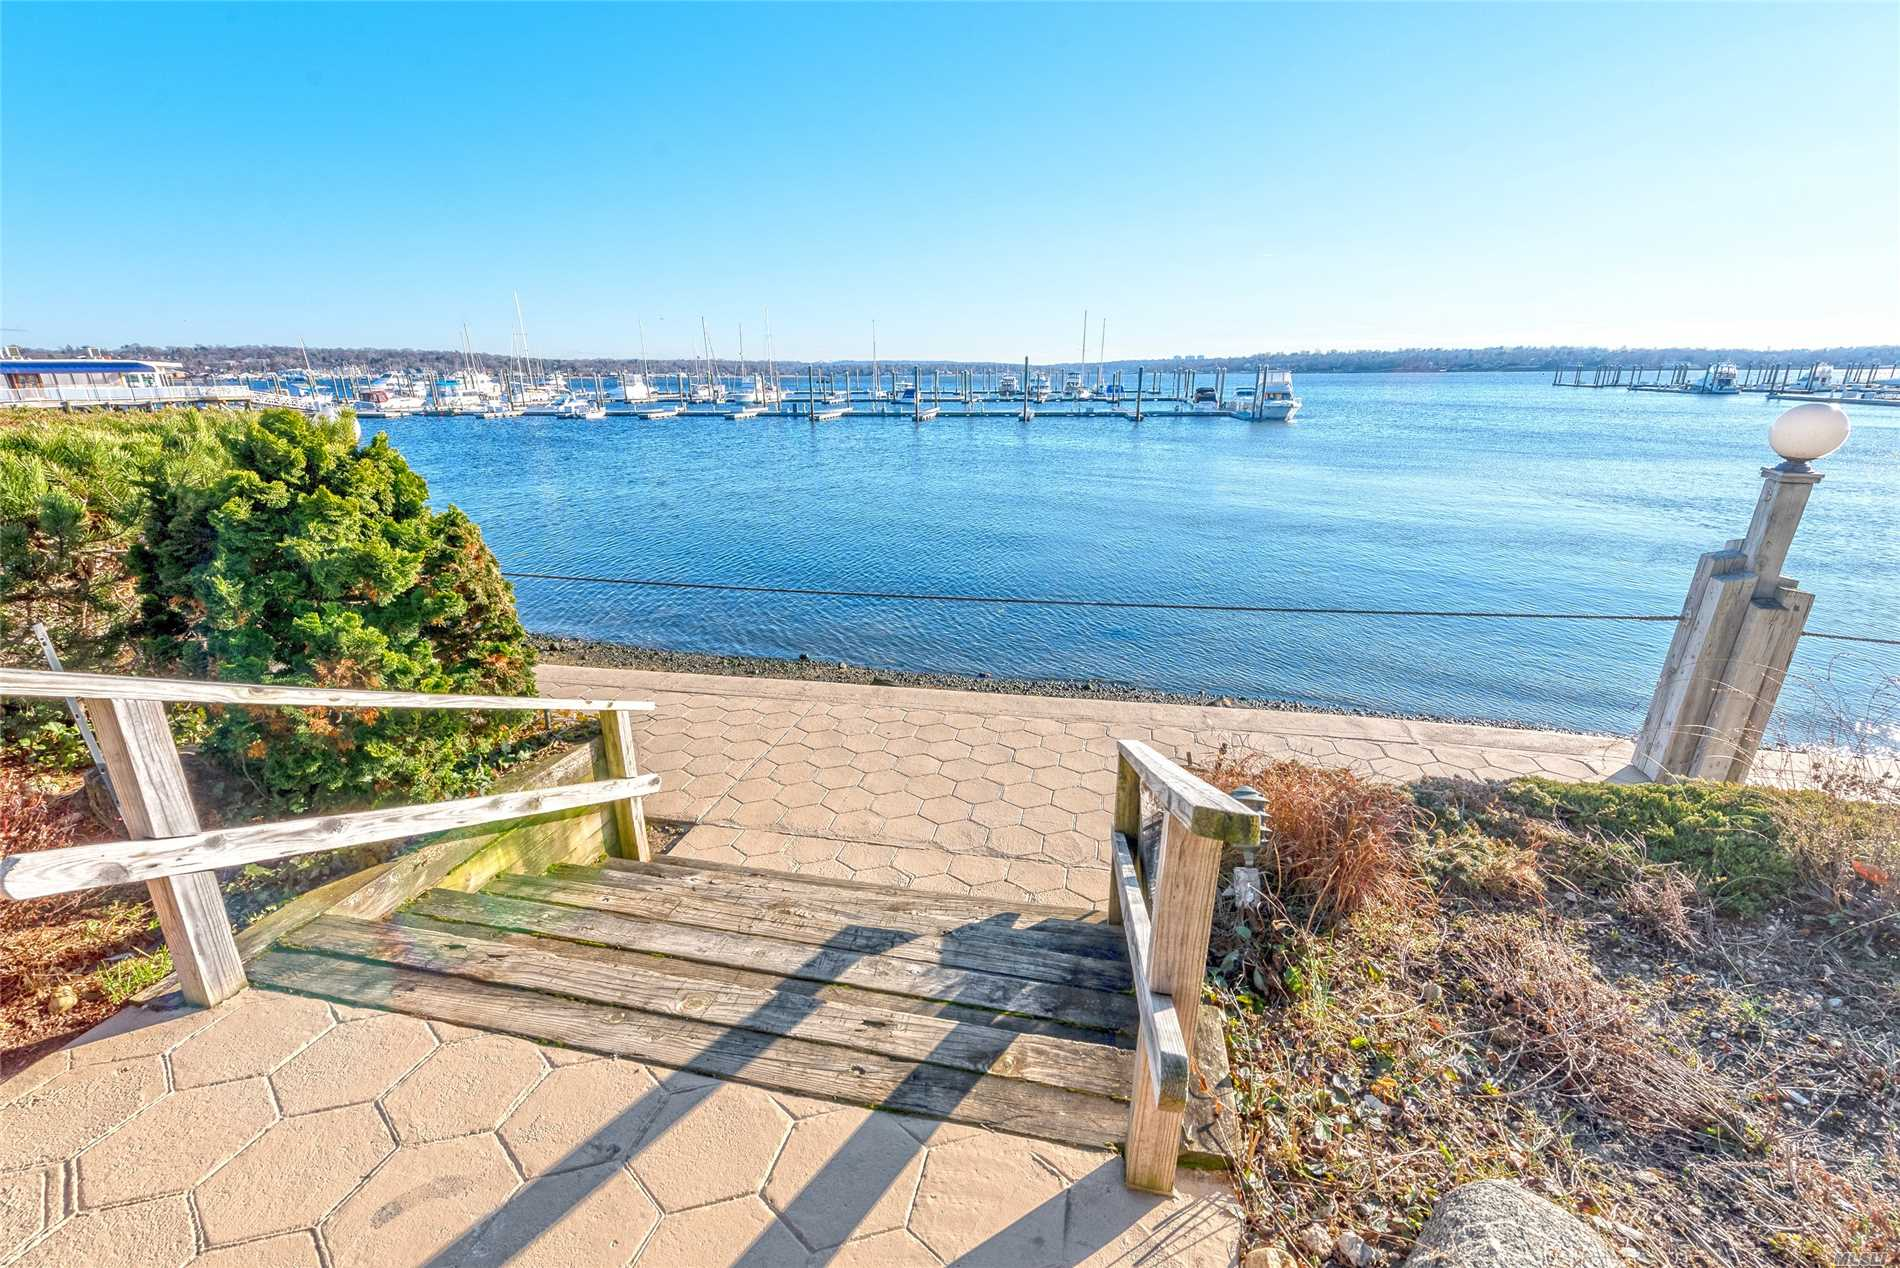 Jaw Dropping Views Of Manhasset Bay From This Turn Key, 3/4 Bedroom Townhouse, Recently Renovated From Top To Bottom, Inside And Out. Spectacular Water Views From All Three Levels. New Roof, Siding, Decking, Hw Floors, 3.5 Baths, Kitchen & More! Vacation 365 Days A Year. Annual Maintenance $4000 (Snow Removal, Gardening And Water)